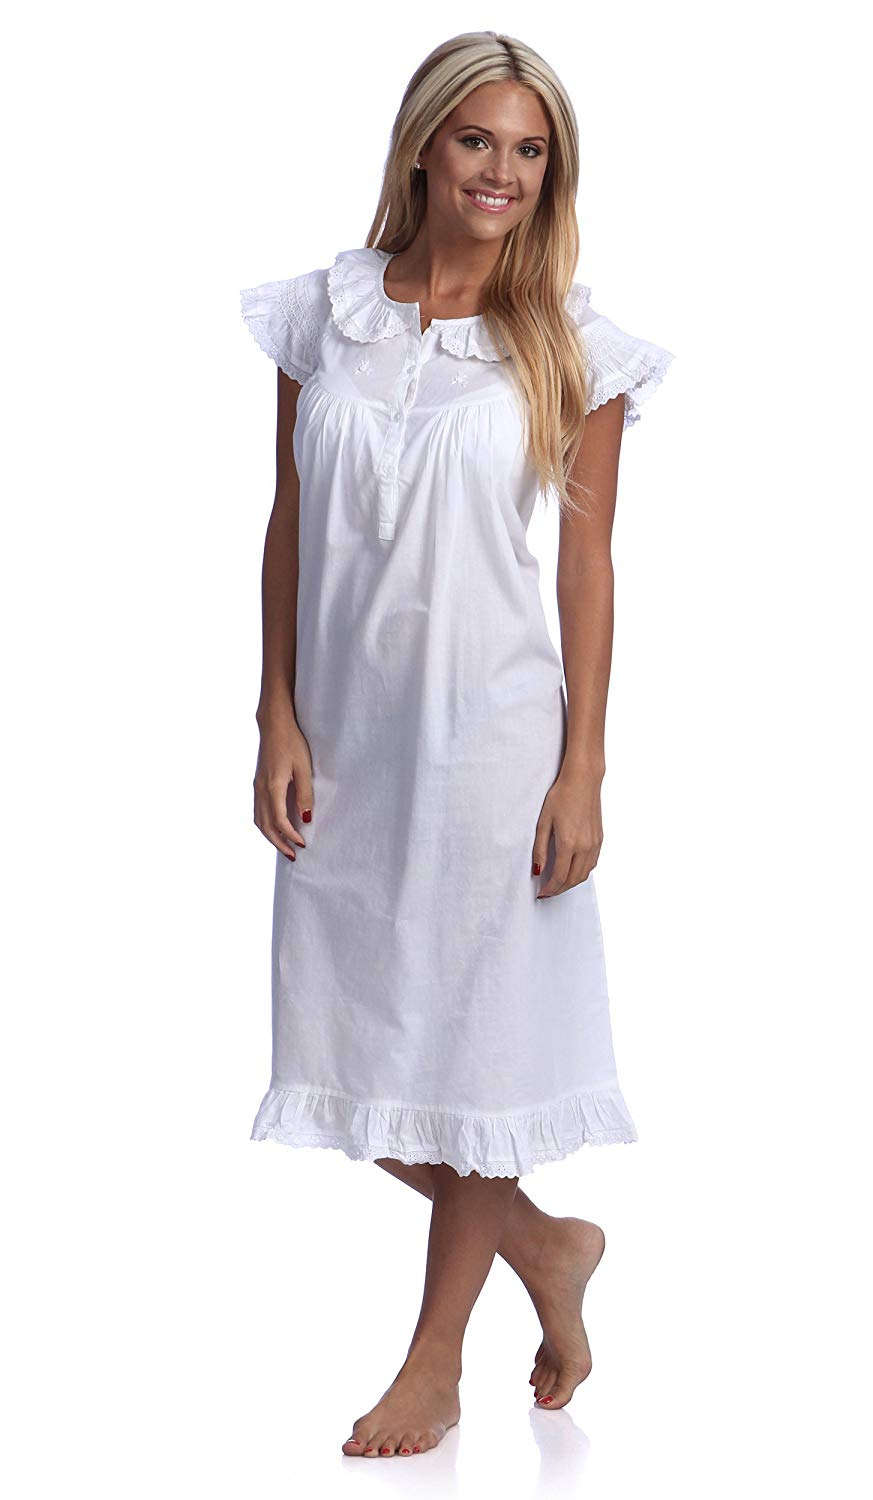 daa1b46f49 Get Quotations · stylesilove Handmade White Embroidered Eyelet Accent Cotton  Night Dress Sleepwear Nightgown